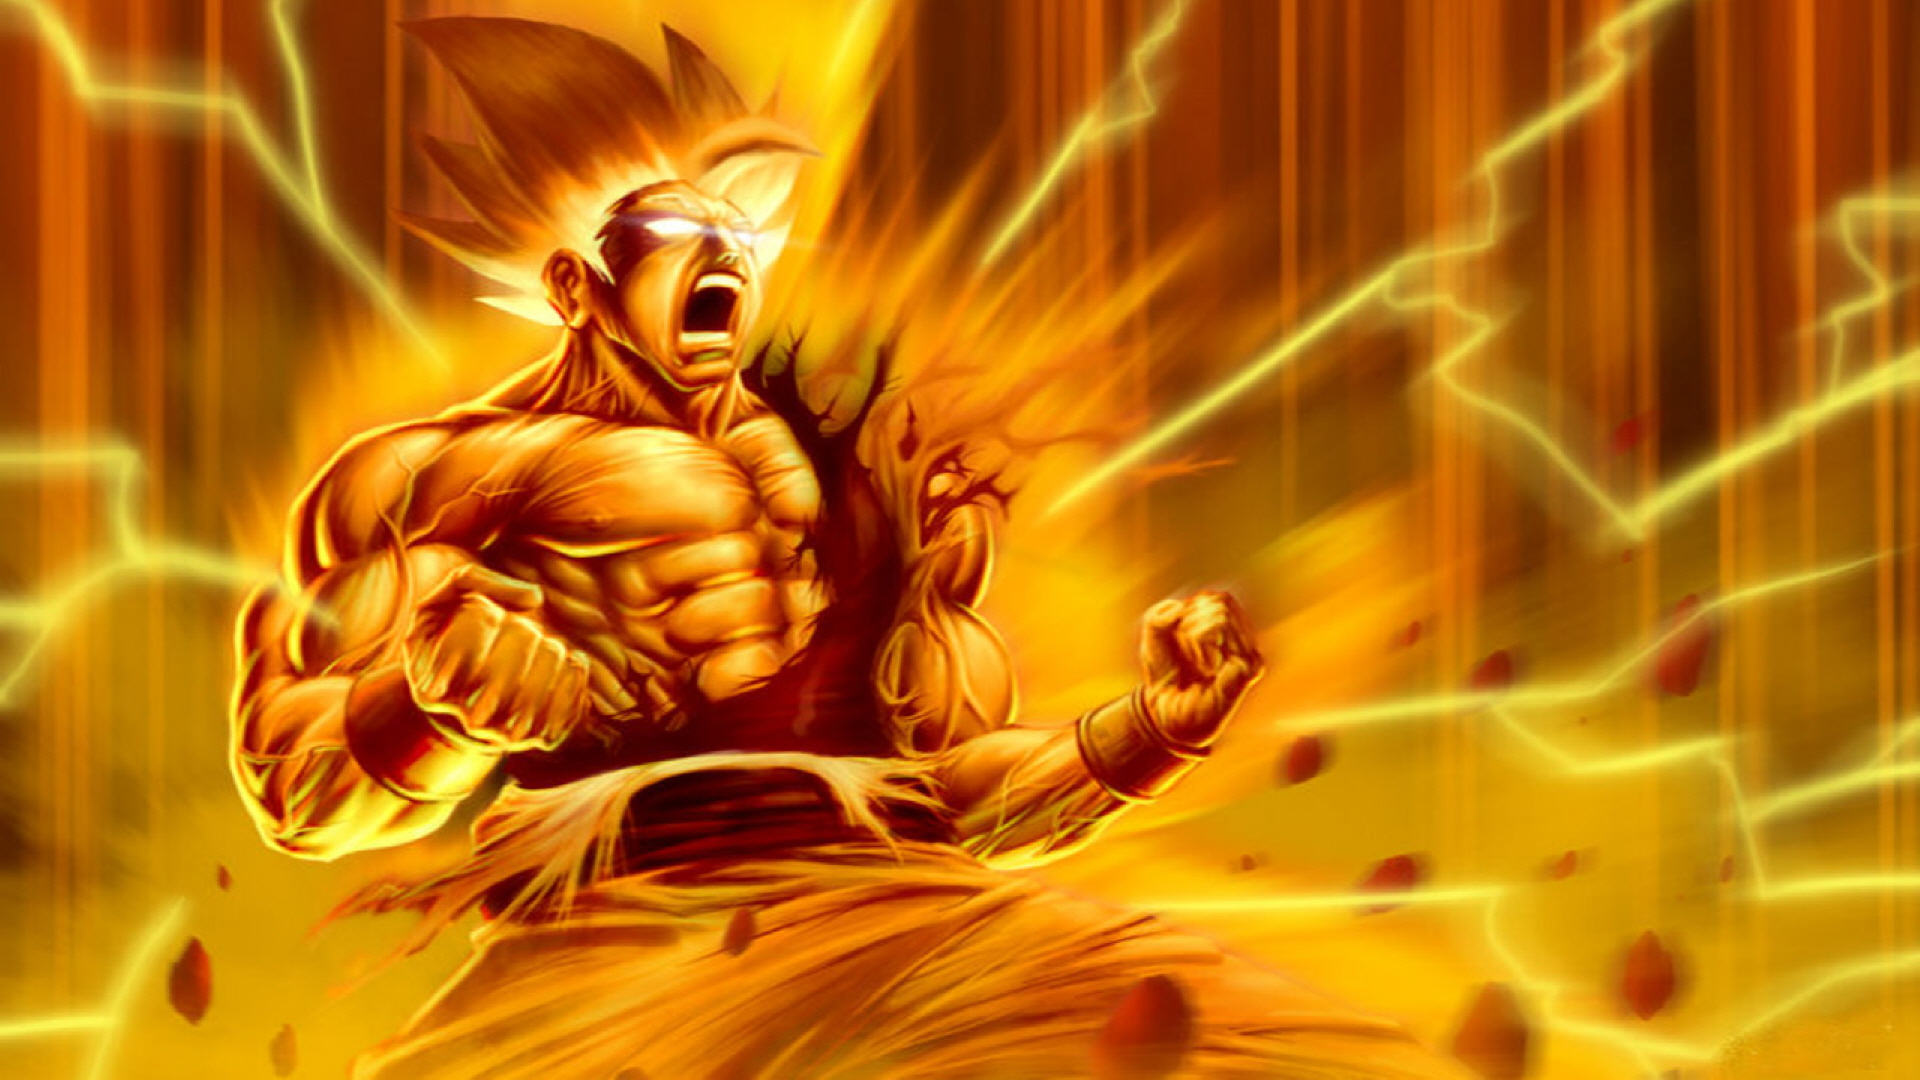 Dragon Ball Z Super Saiyan Wallpaper #6080 Wallpaper